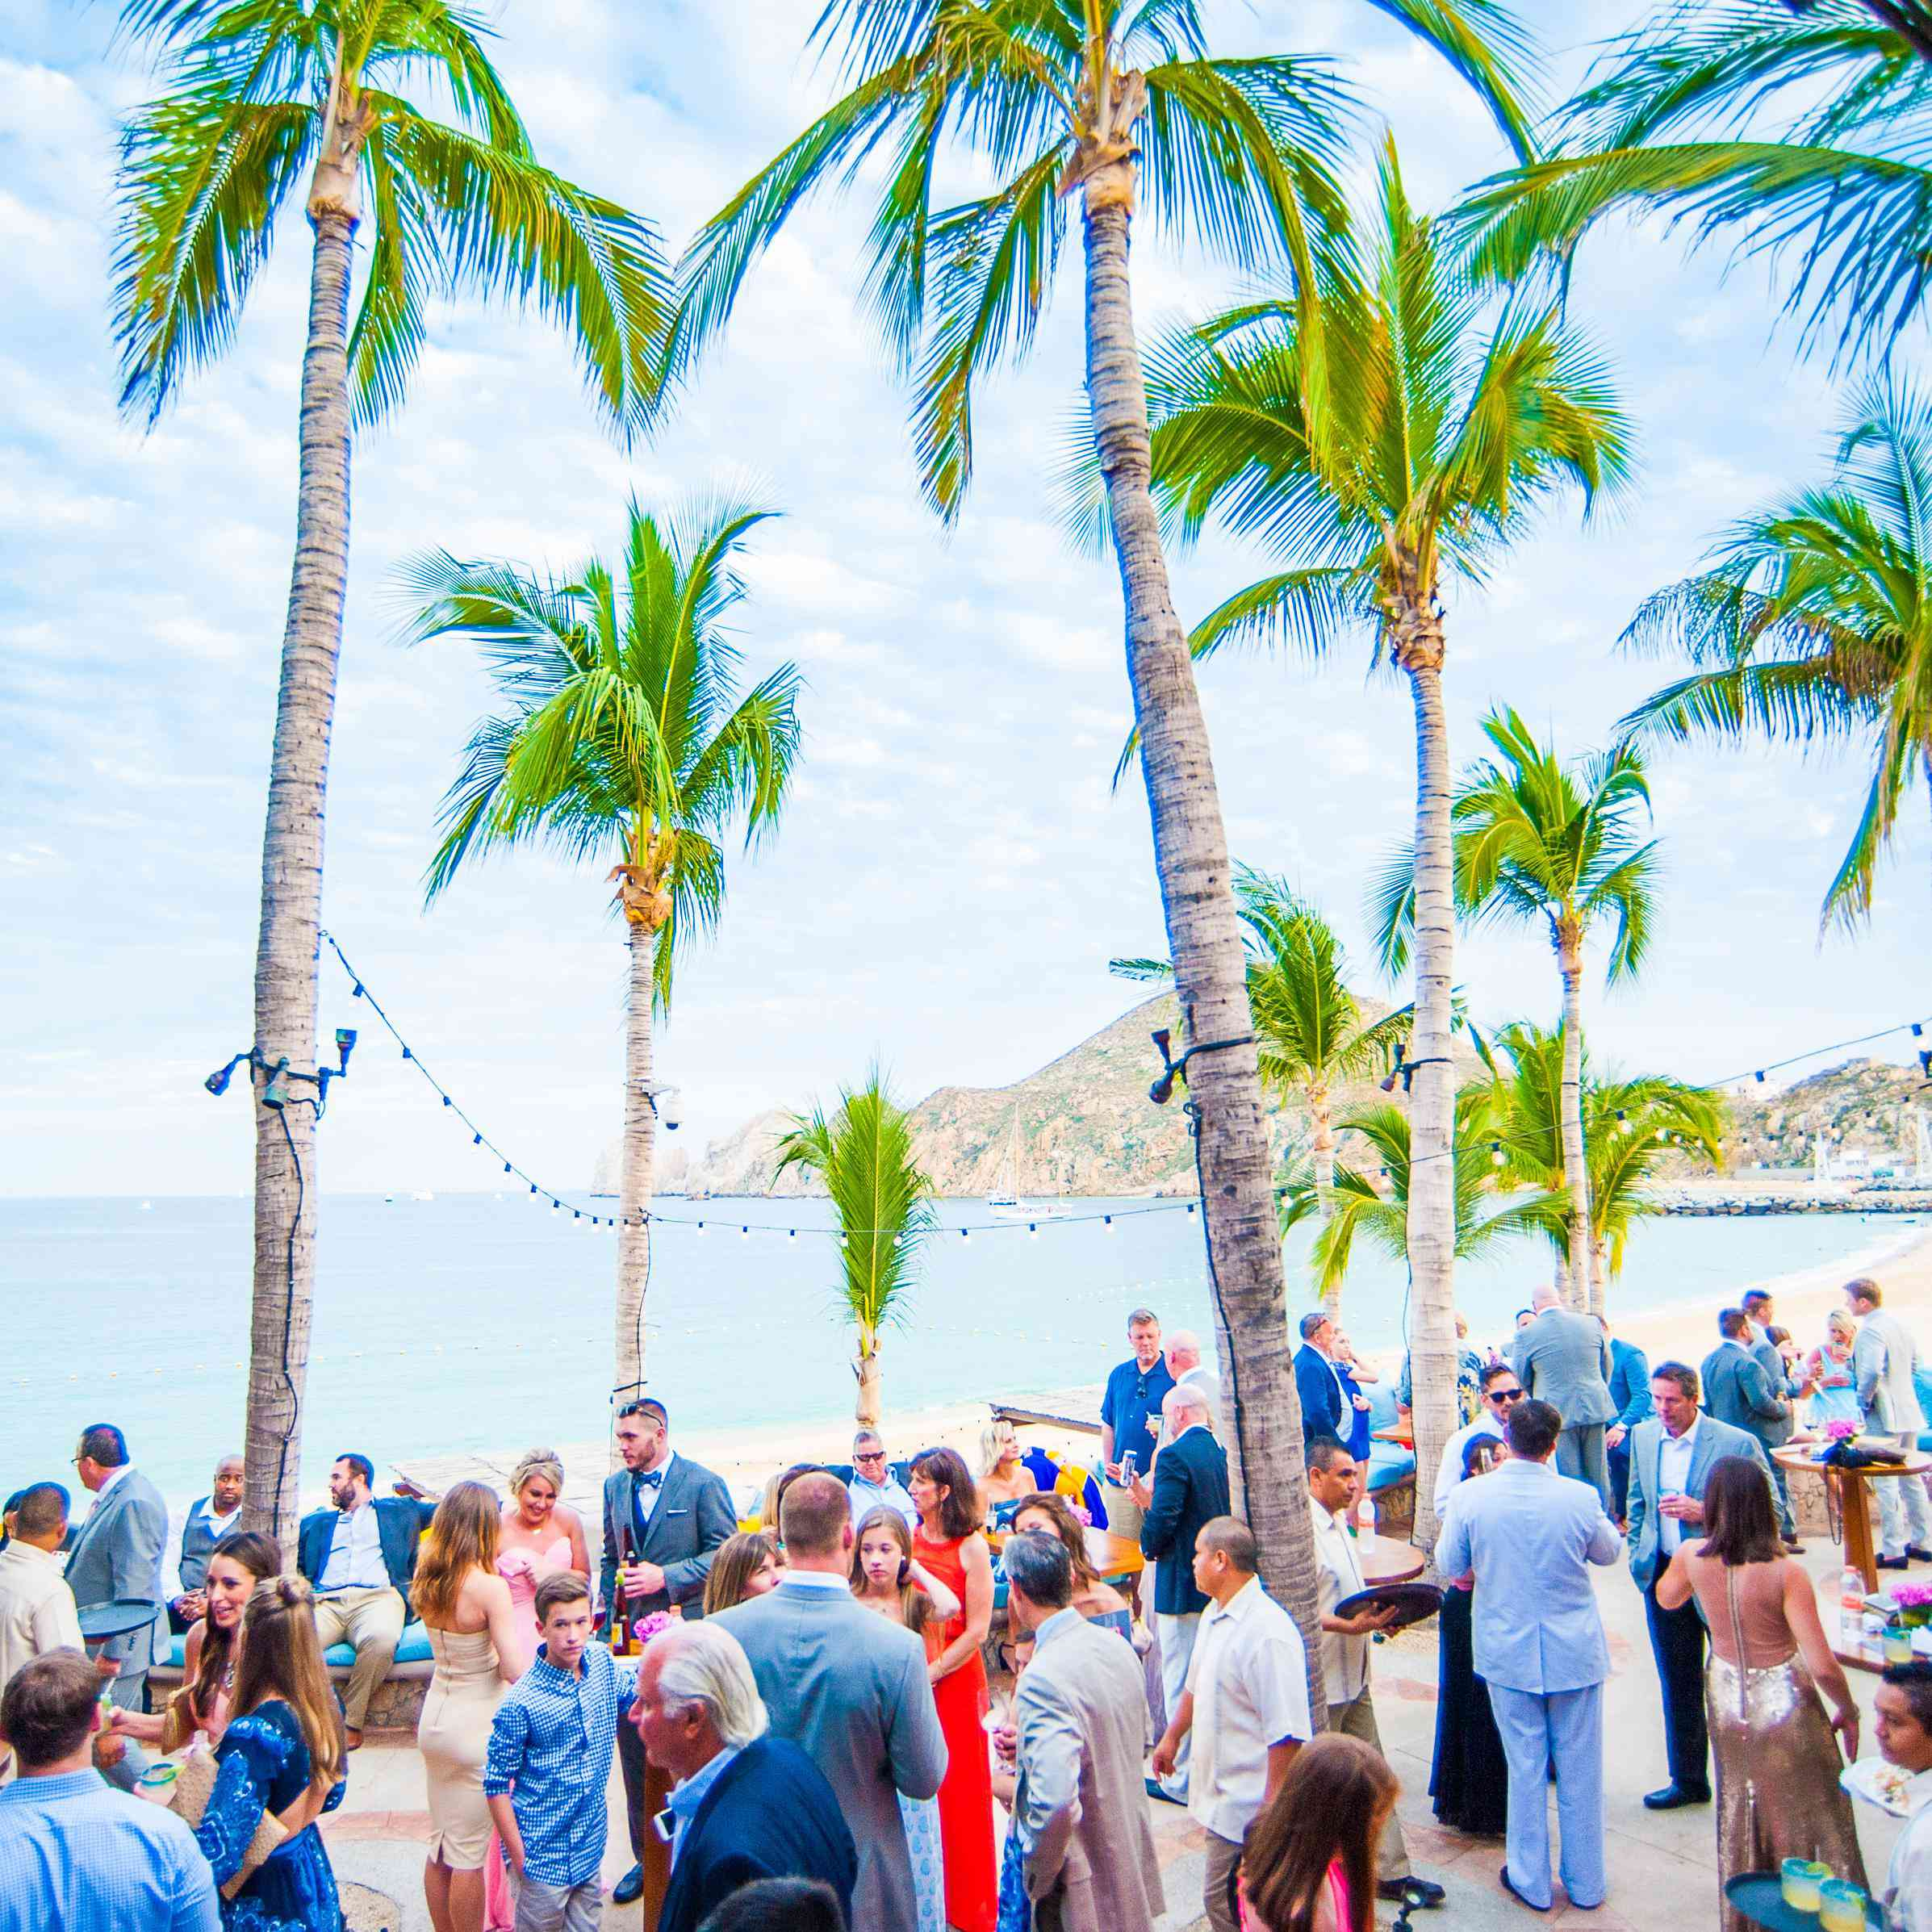 Do You Buy A Gift For A Destination Wedding: Do We Have To Host A Pre-Wedding Welcome Event AND A